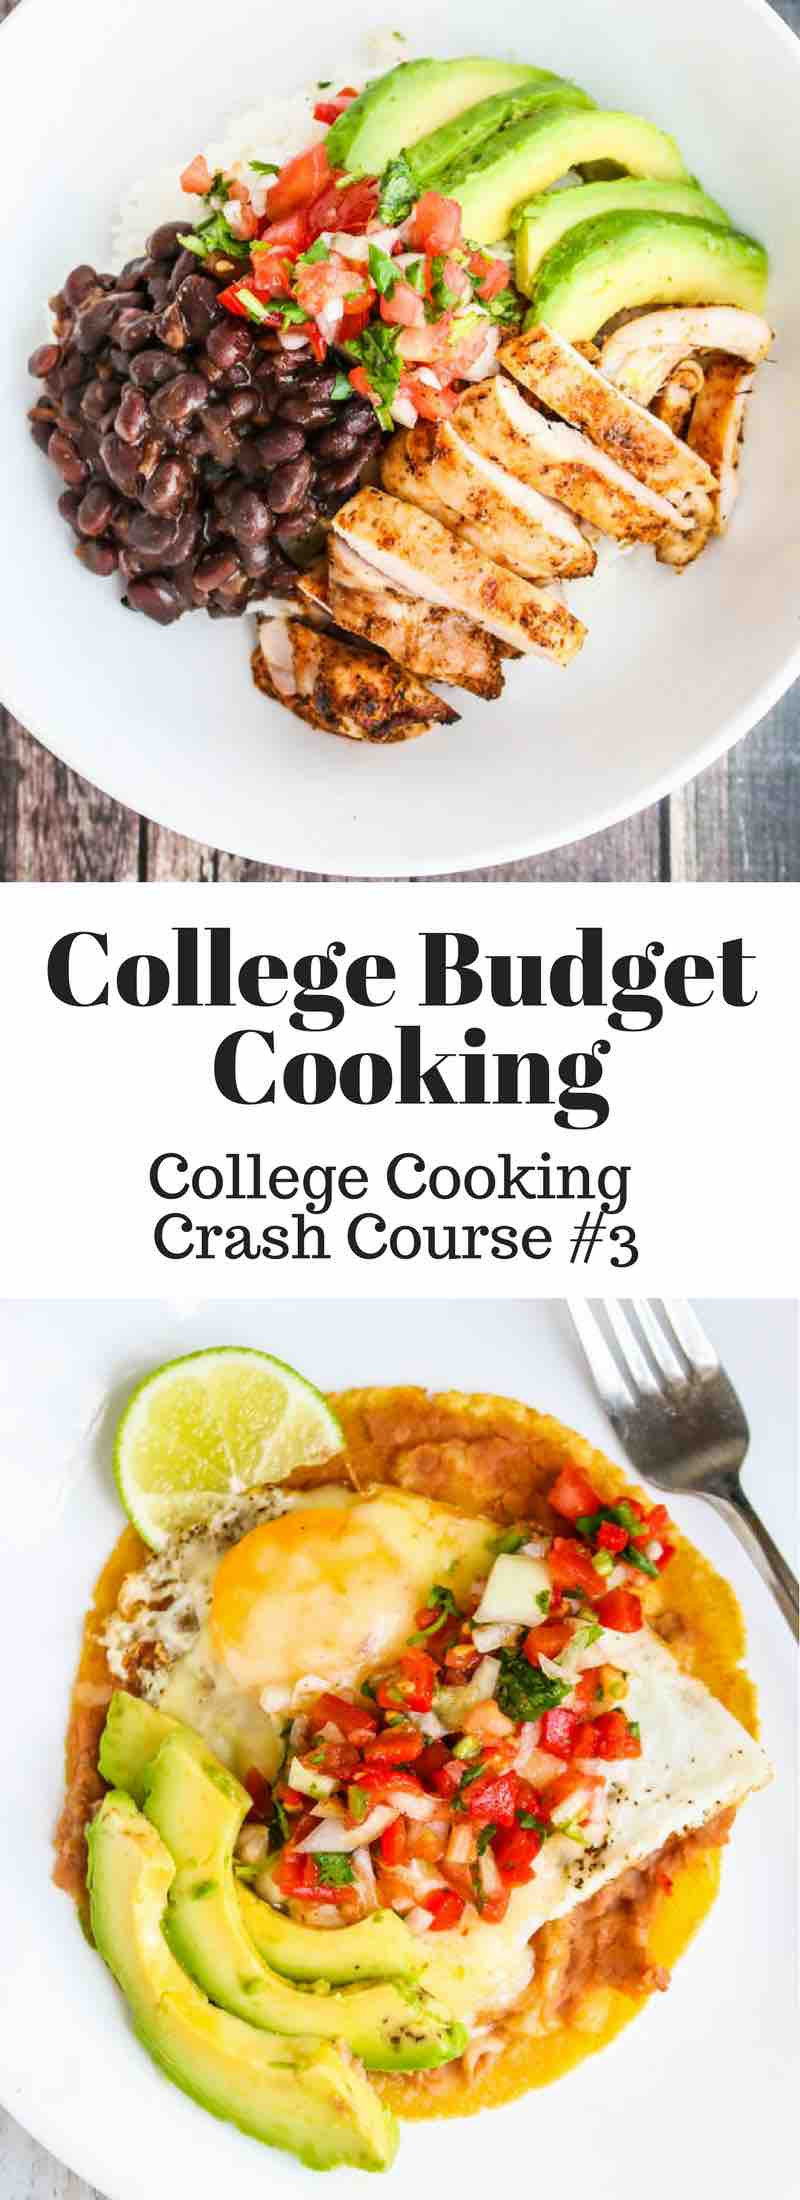 Low Budget Cooking - college student cooking on $6/day